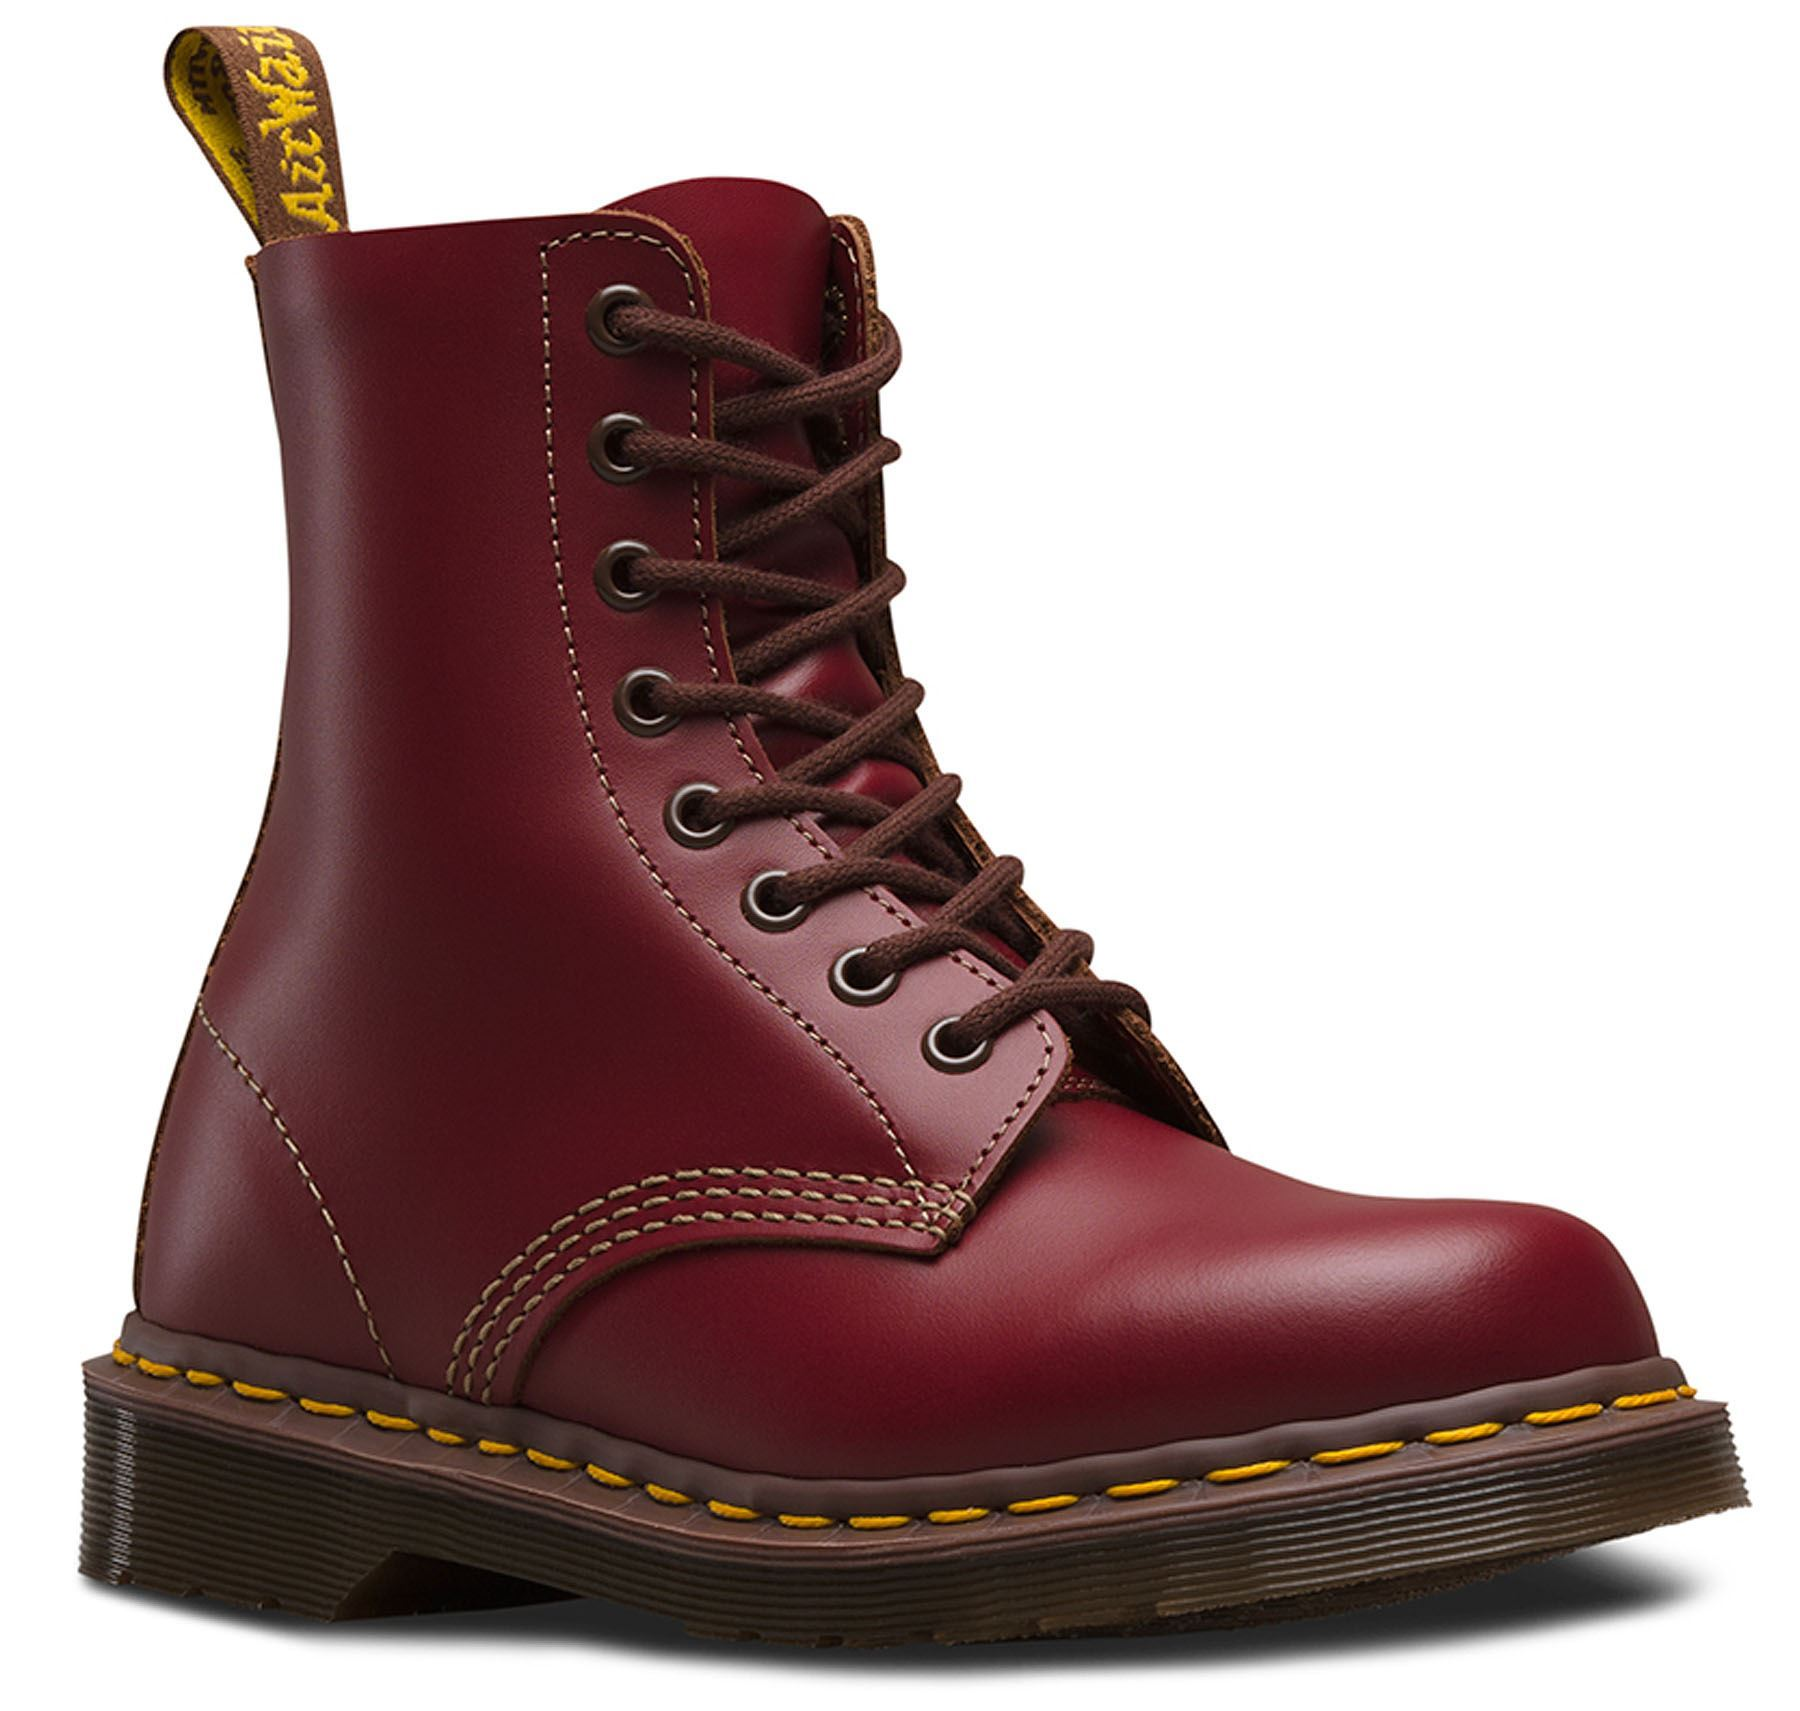 Vintage 8 Details Zu Dr Martens 1460 Made In England Vintage Collection 8 Eye Leather Ankle Boots